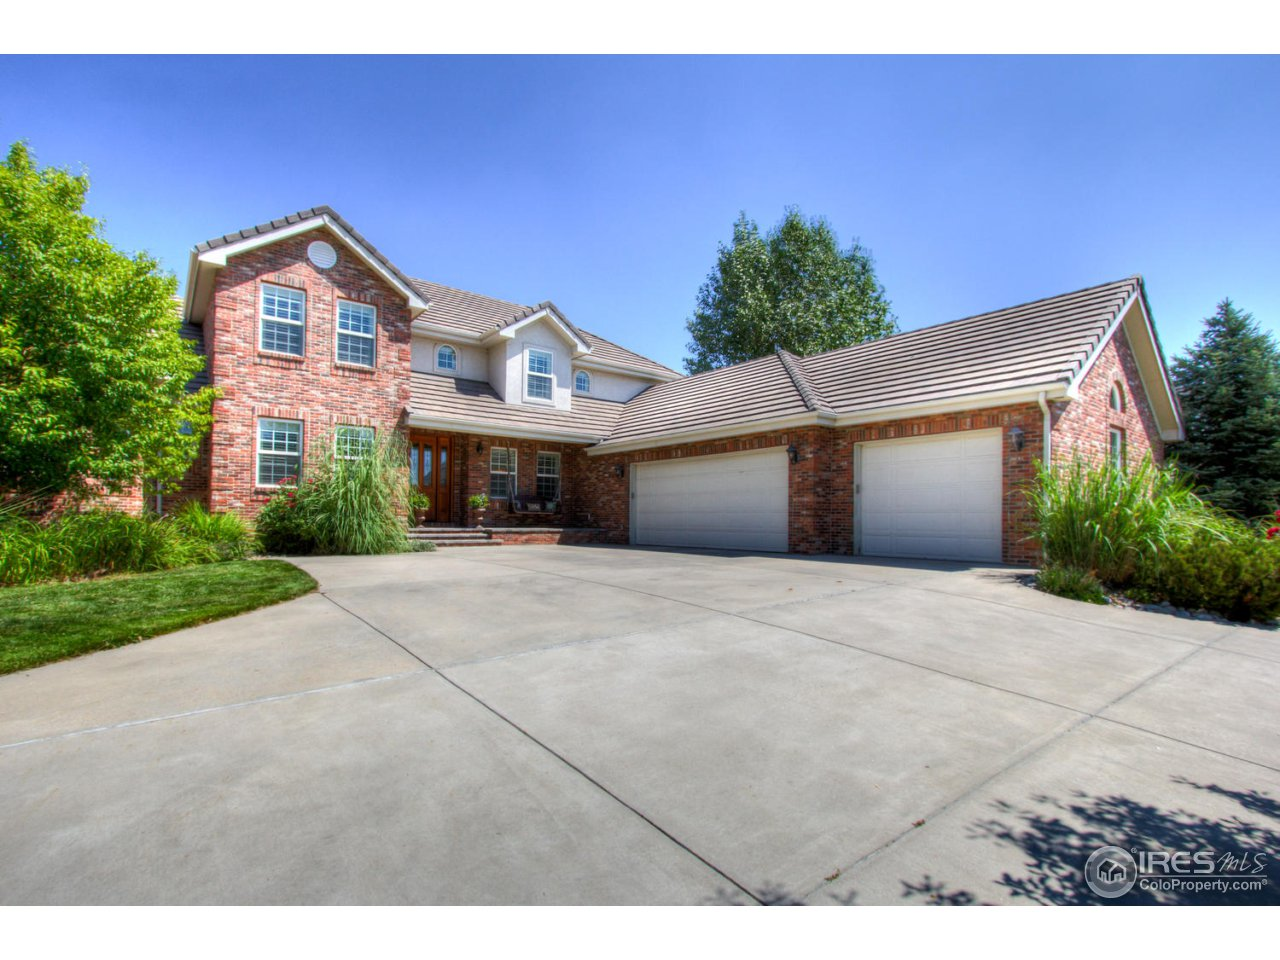 12935 W 81st Ave, Arvada, CO 80005